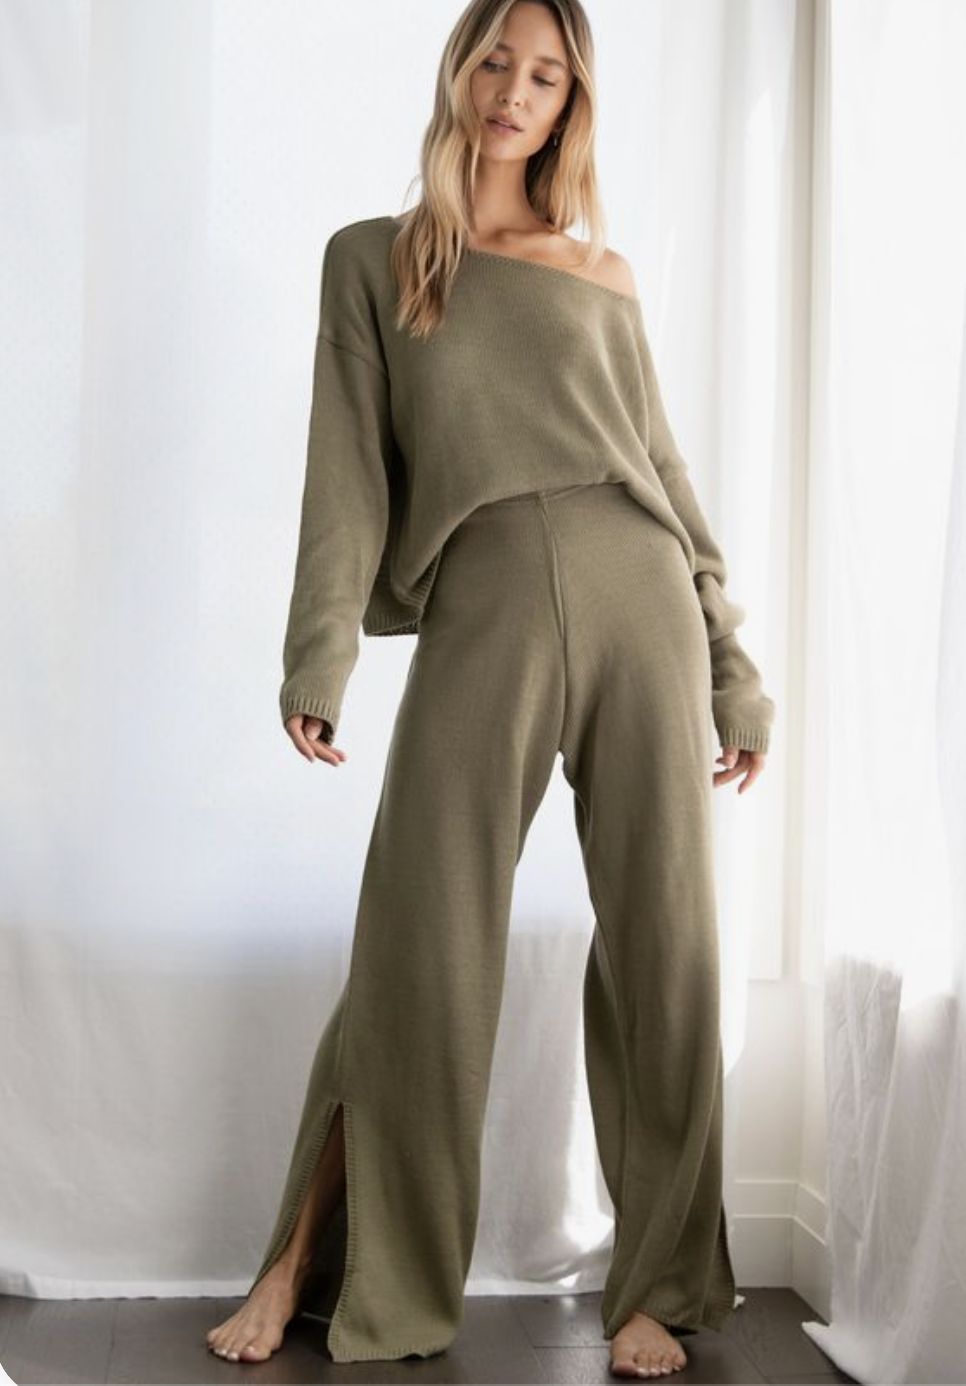 girl modeling olive green sweat suit outfit for Nicole Eva post ideal look book in late 20s